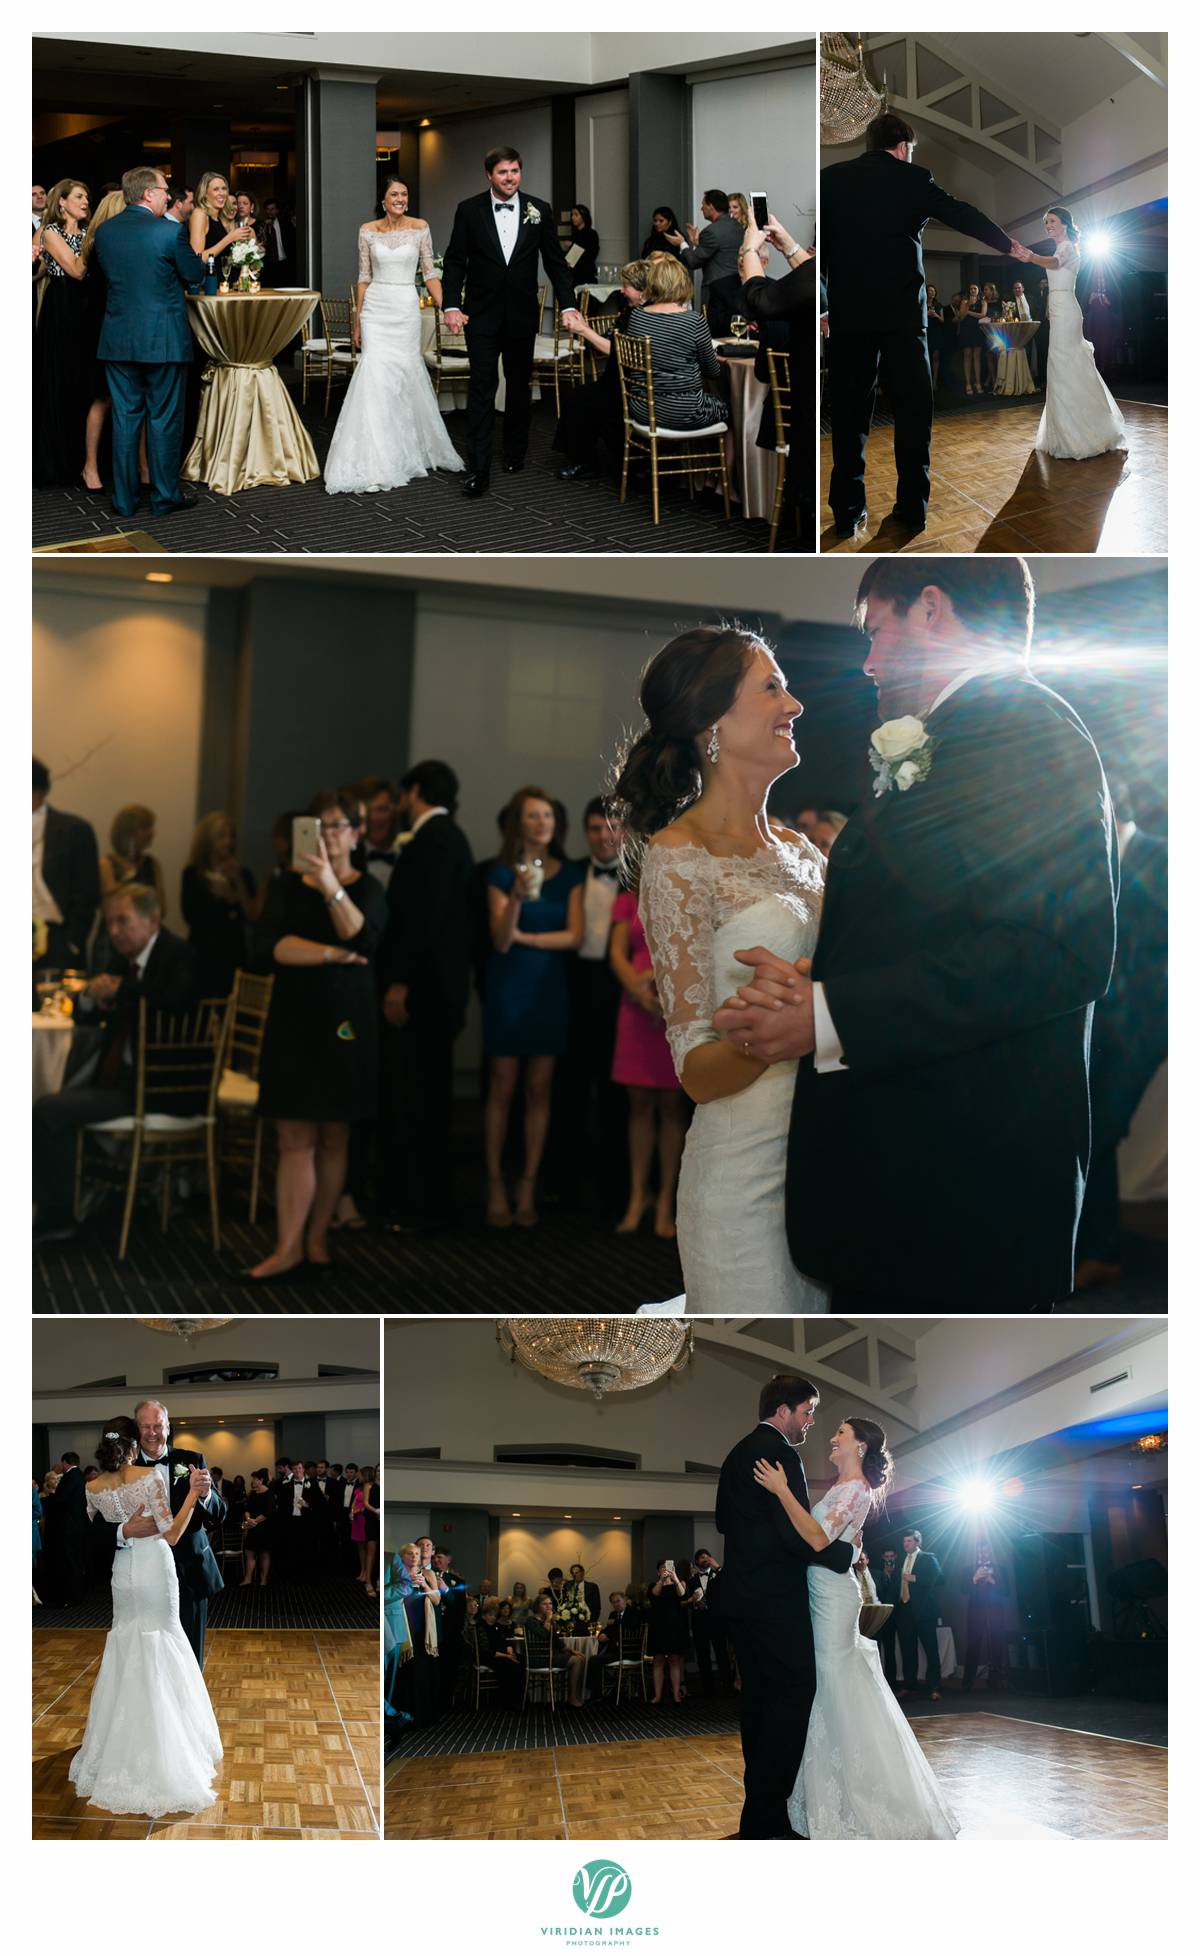 Eagles-Landing-Country-Club-Atlanta-Wedding-Viridian-Images-Photography-photo 32